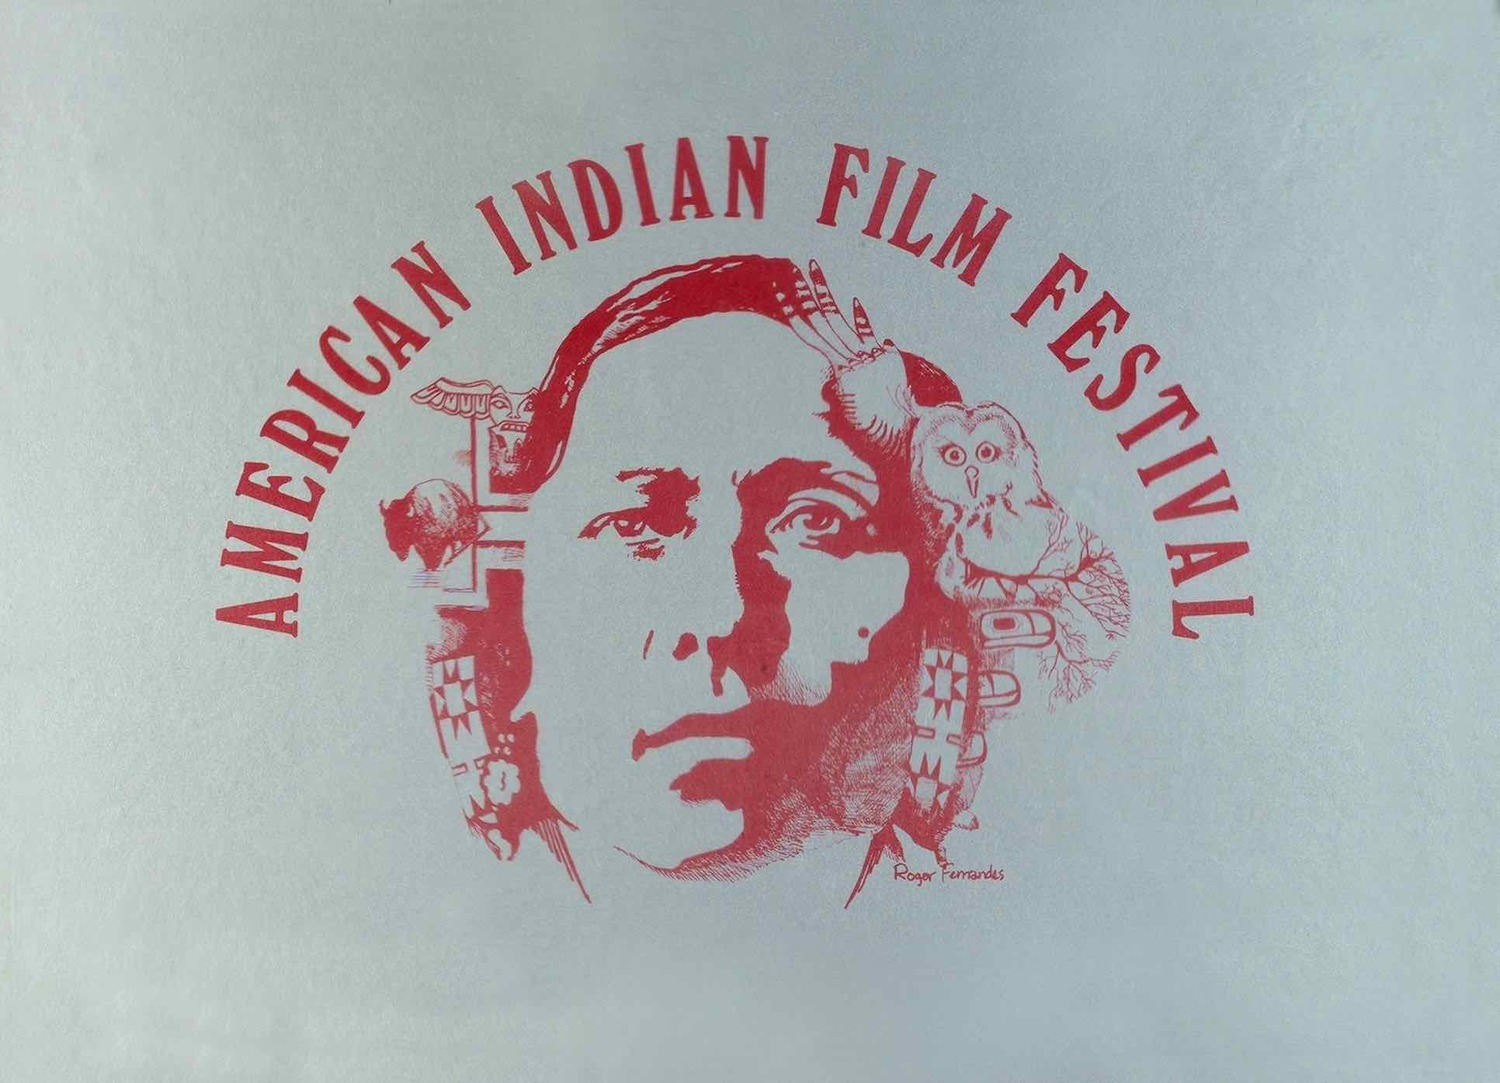 American Indian Film Festival poster from 1975 (Roger Fernandes)